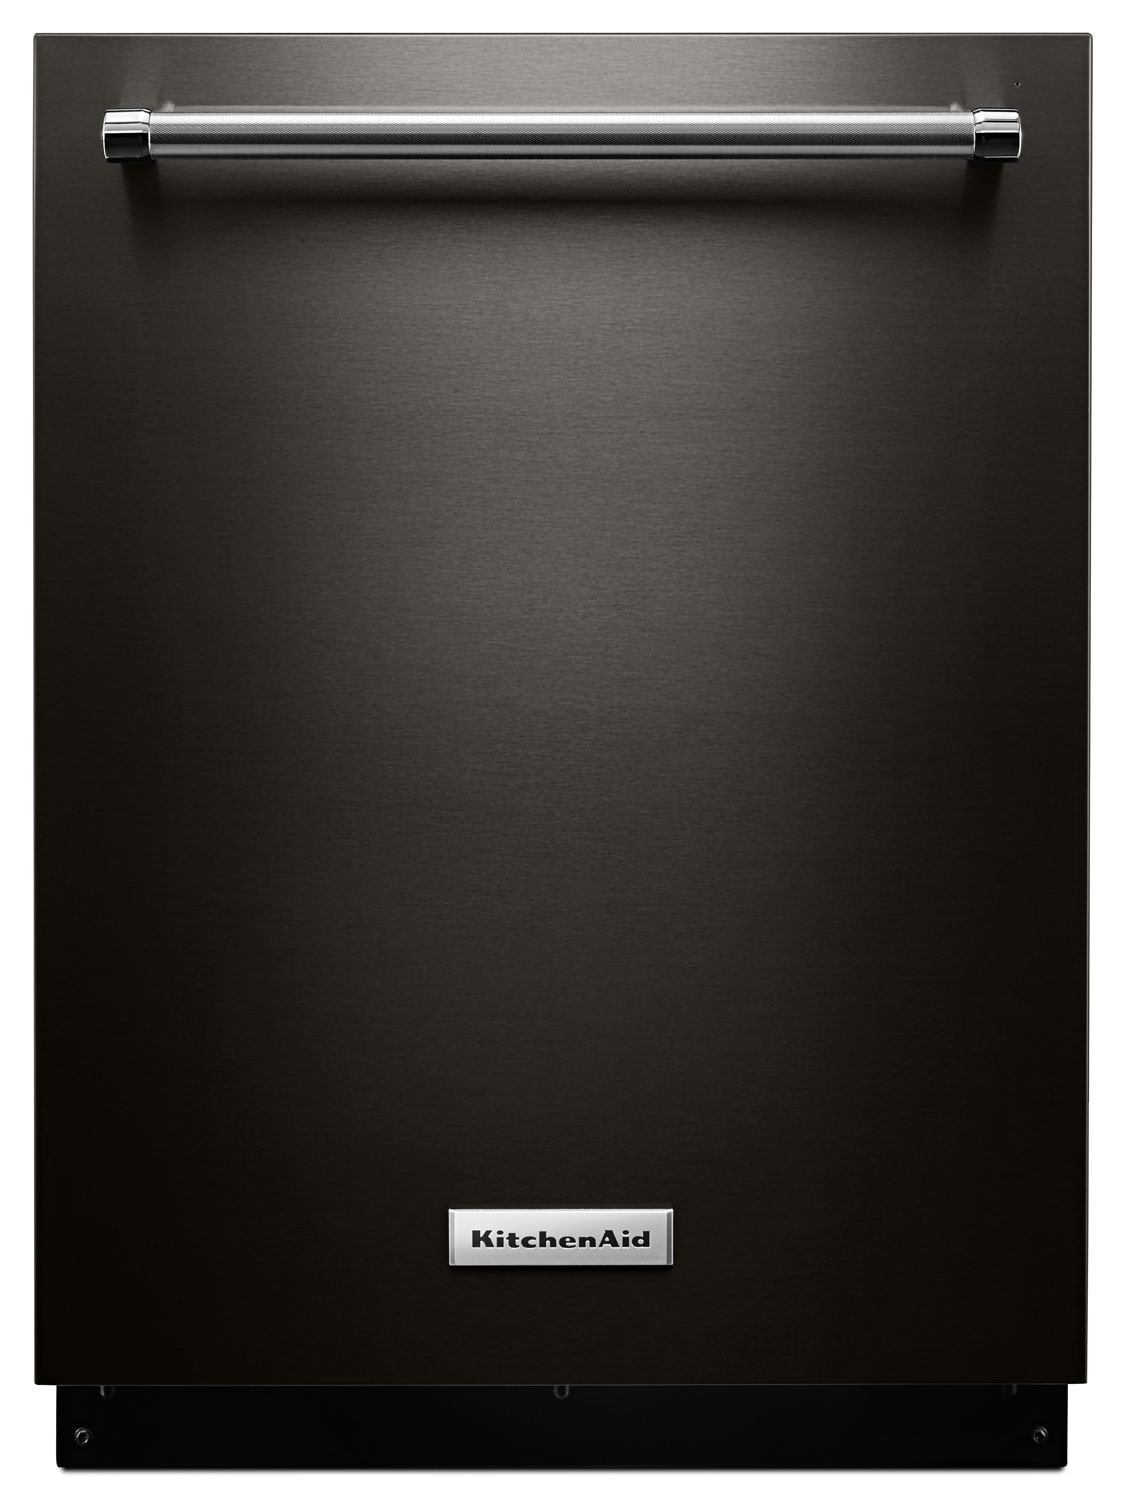 KitchenAid Built-In Top-Control Dishwasher – KDTE104EBS